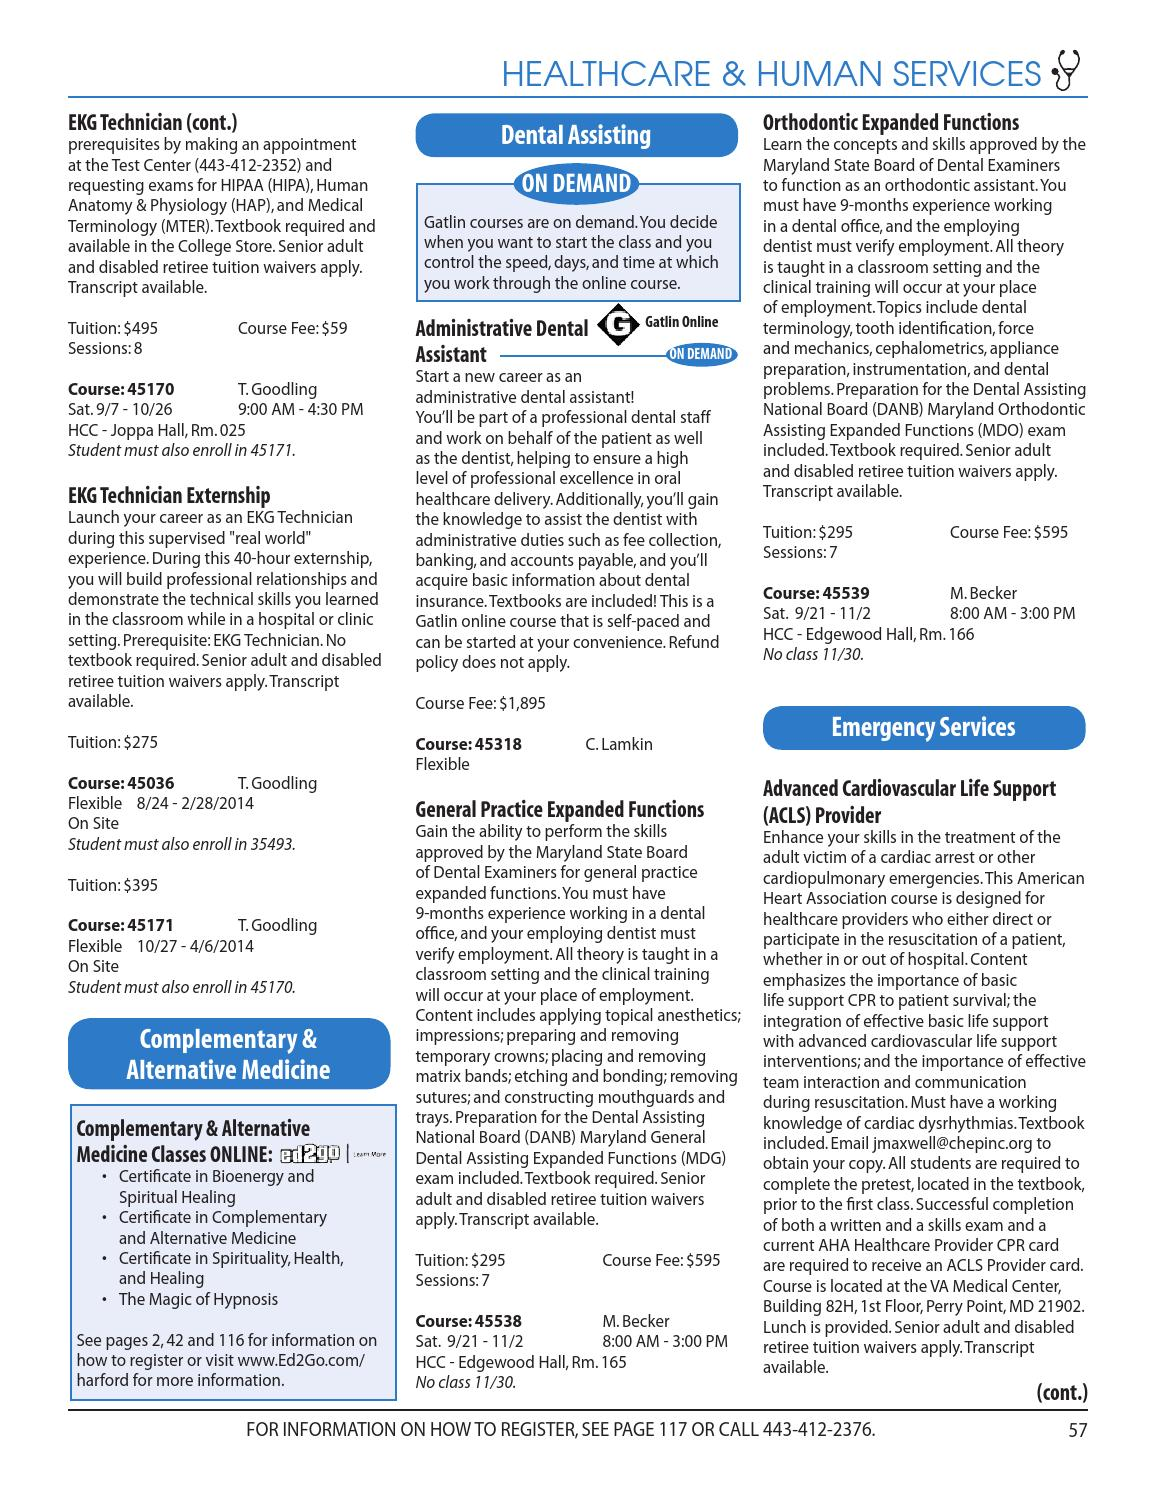 Hcc fall noncredit schedule by harford community college issuu 1betcityfo Choice Image